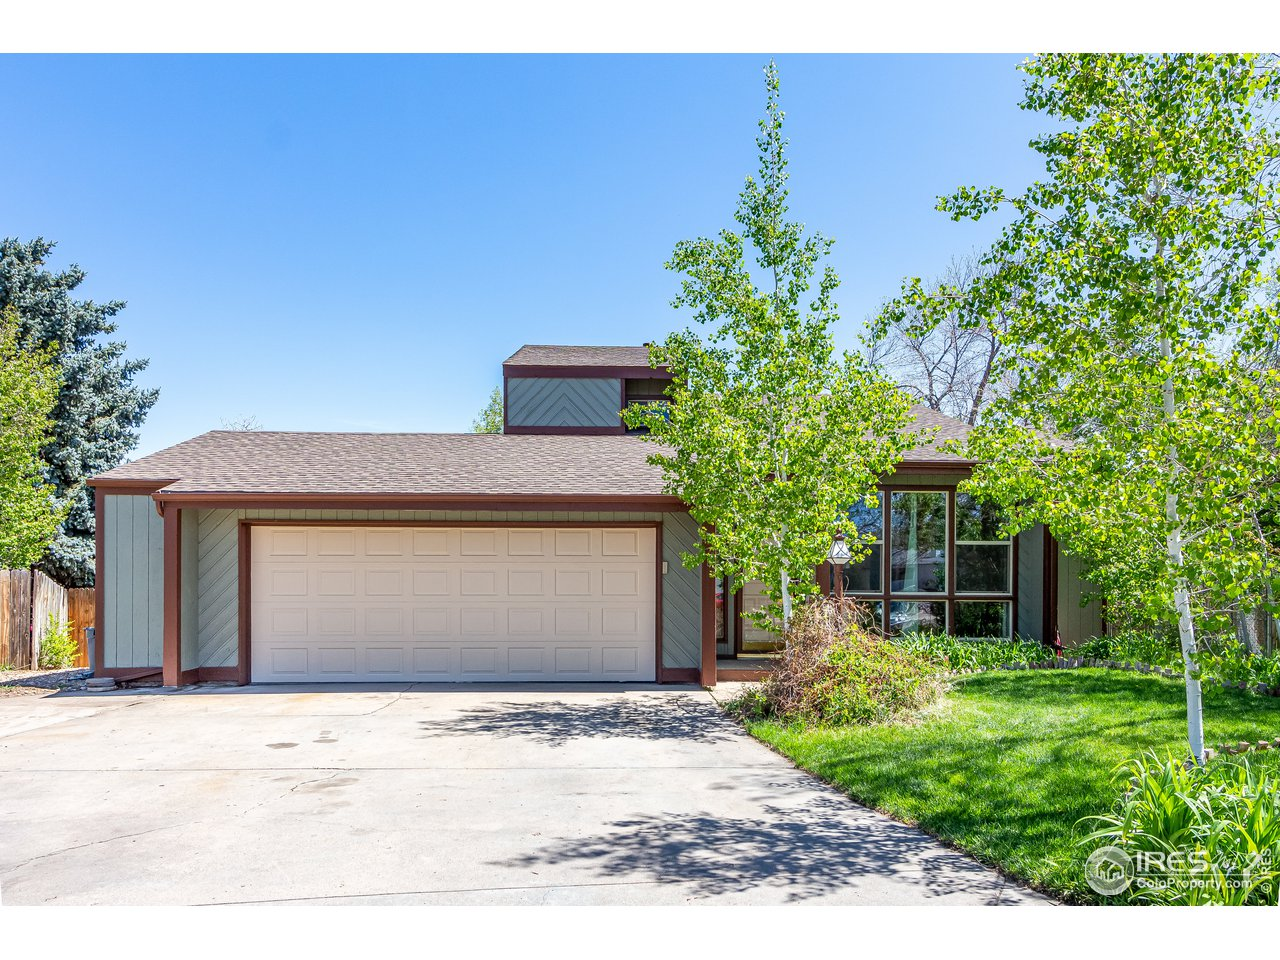 728 41st Ave Ct, Greeley CO 80634